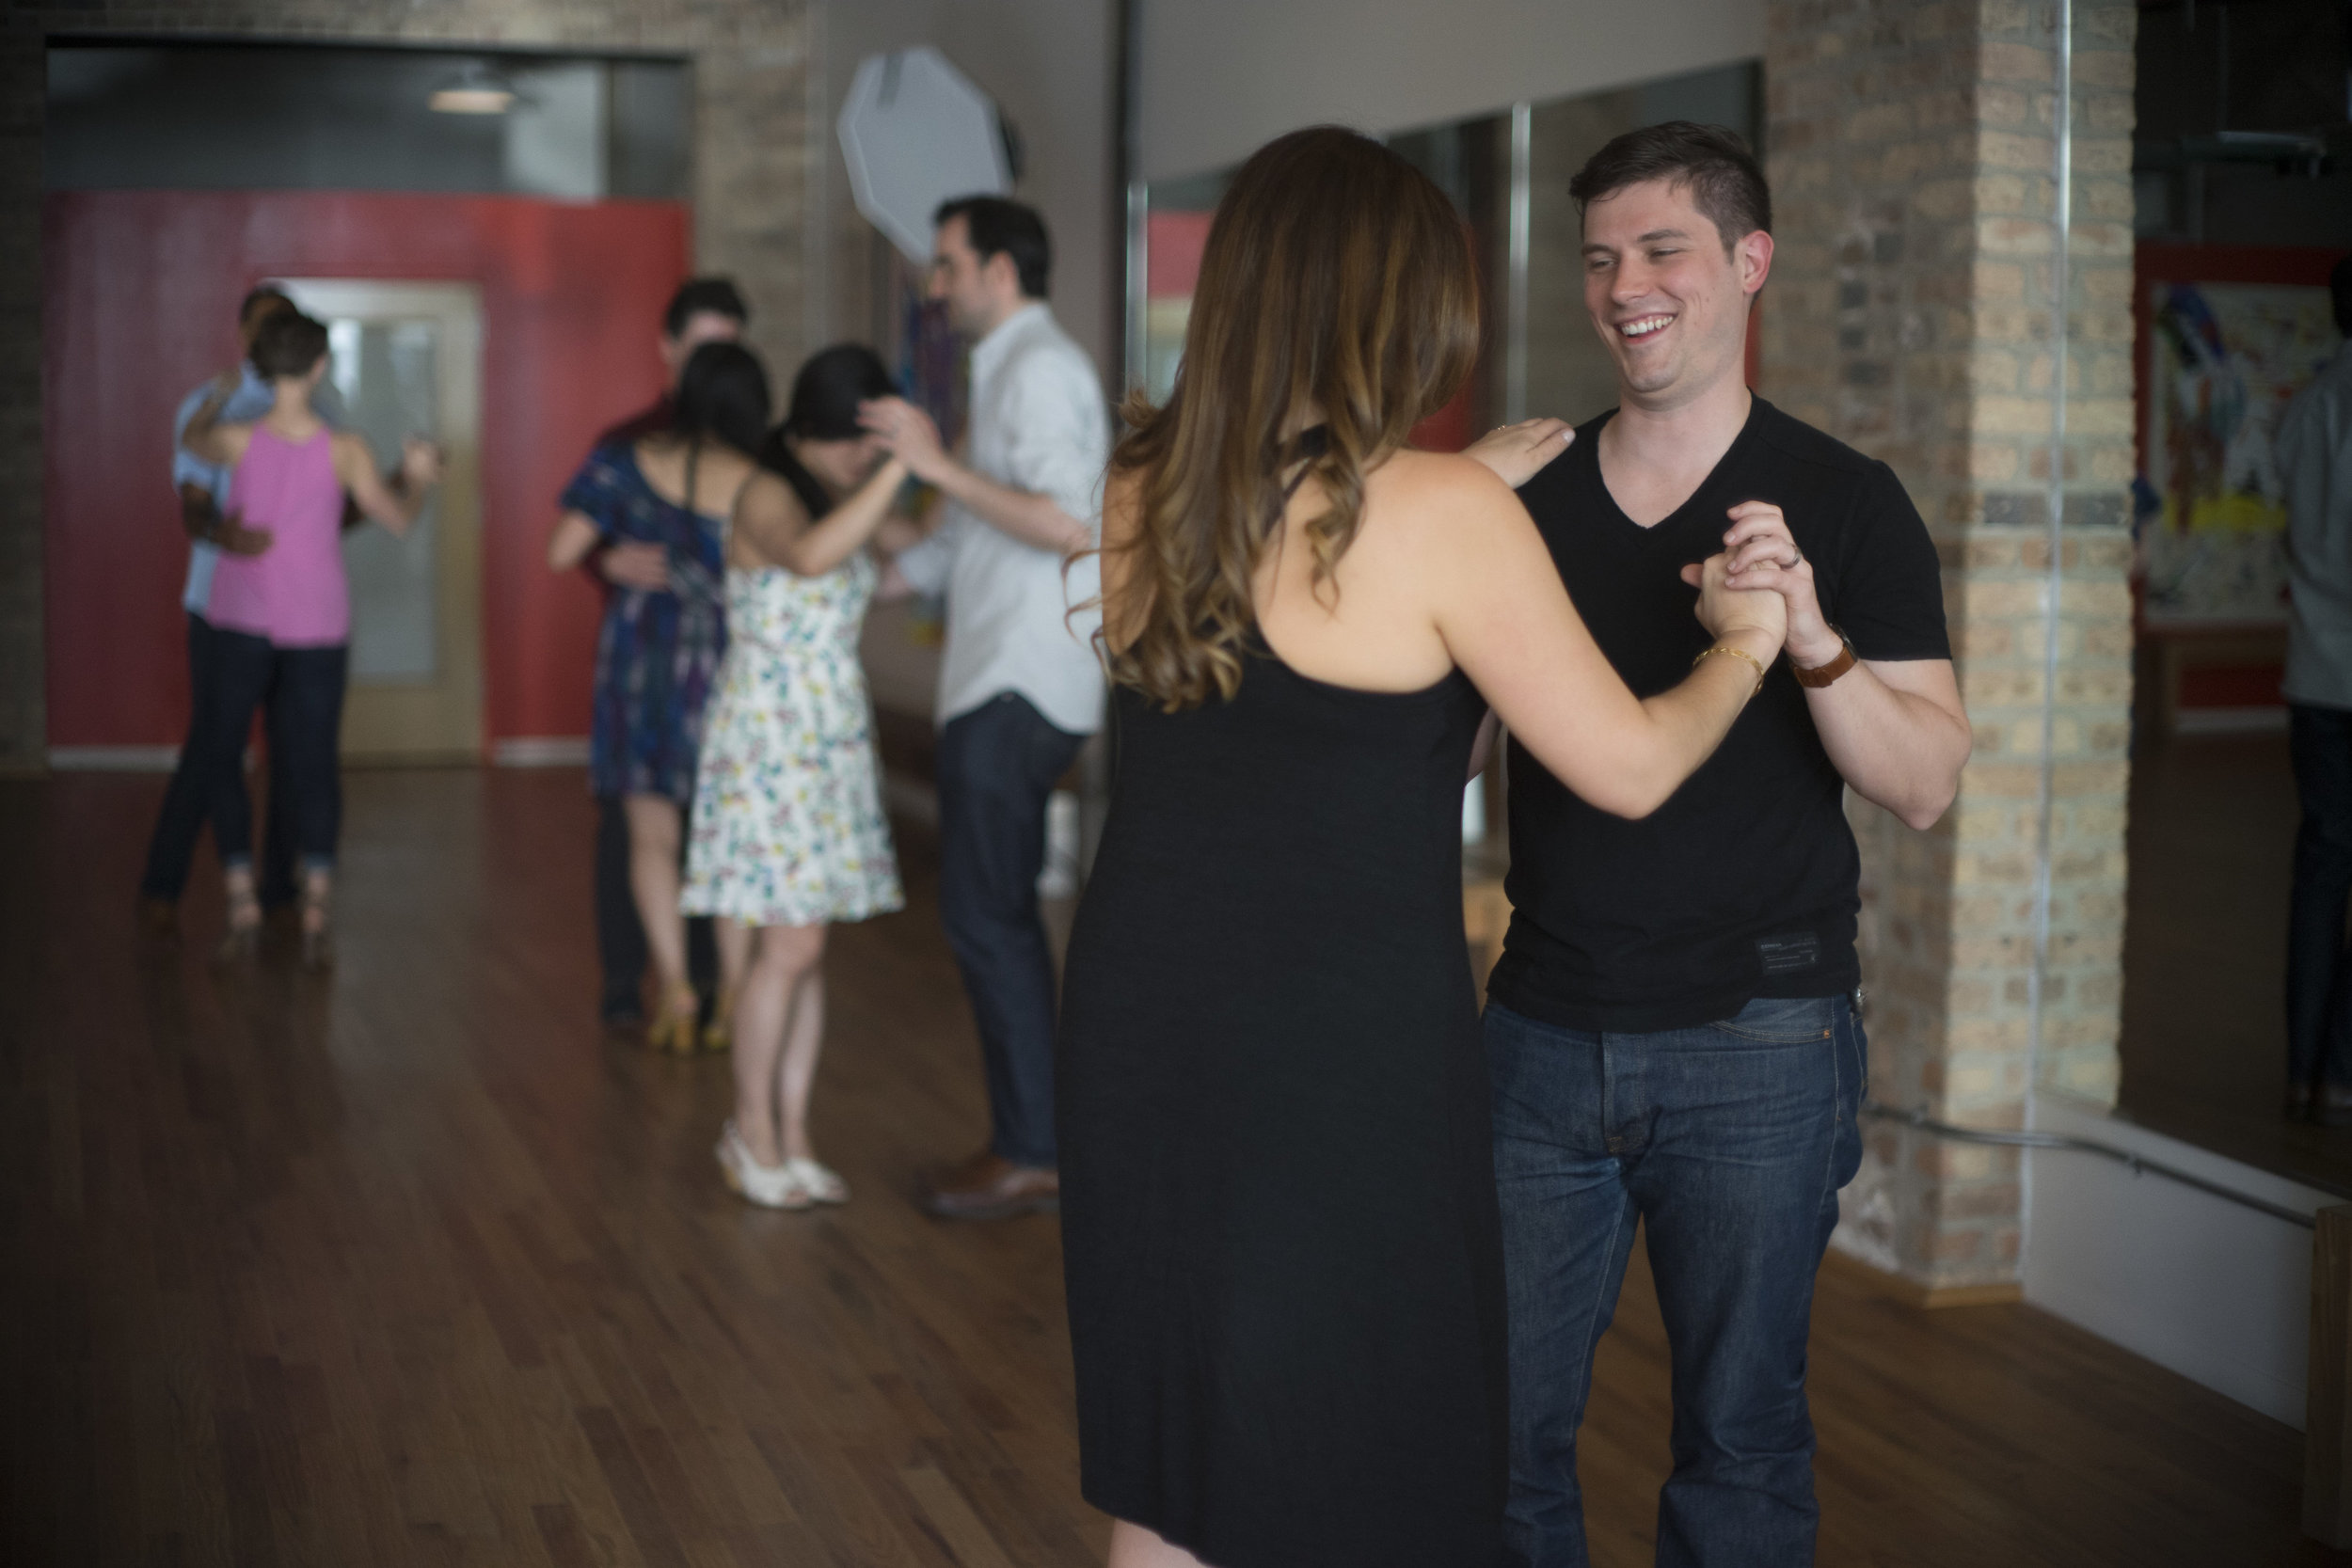 wedding dance lessons chicago.jpg